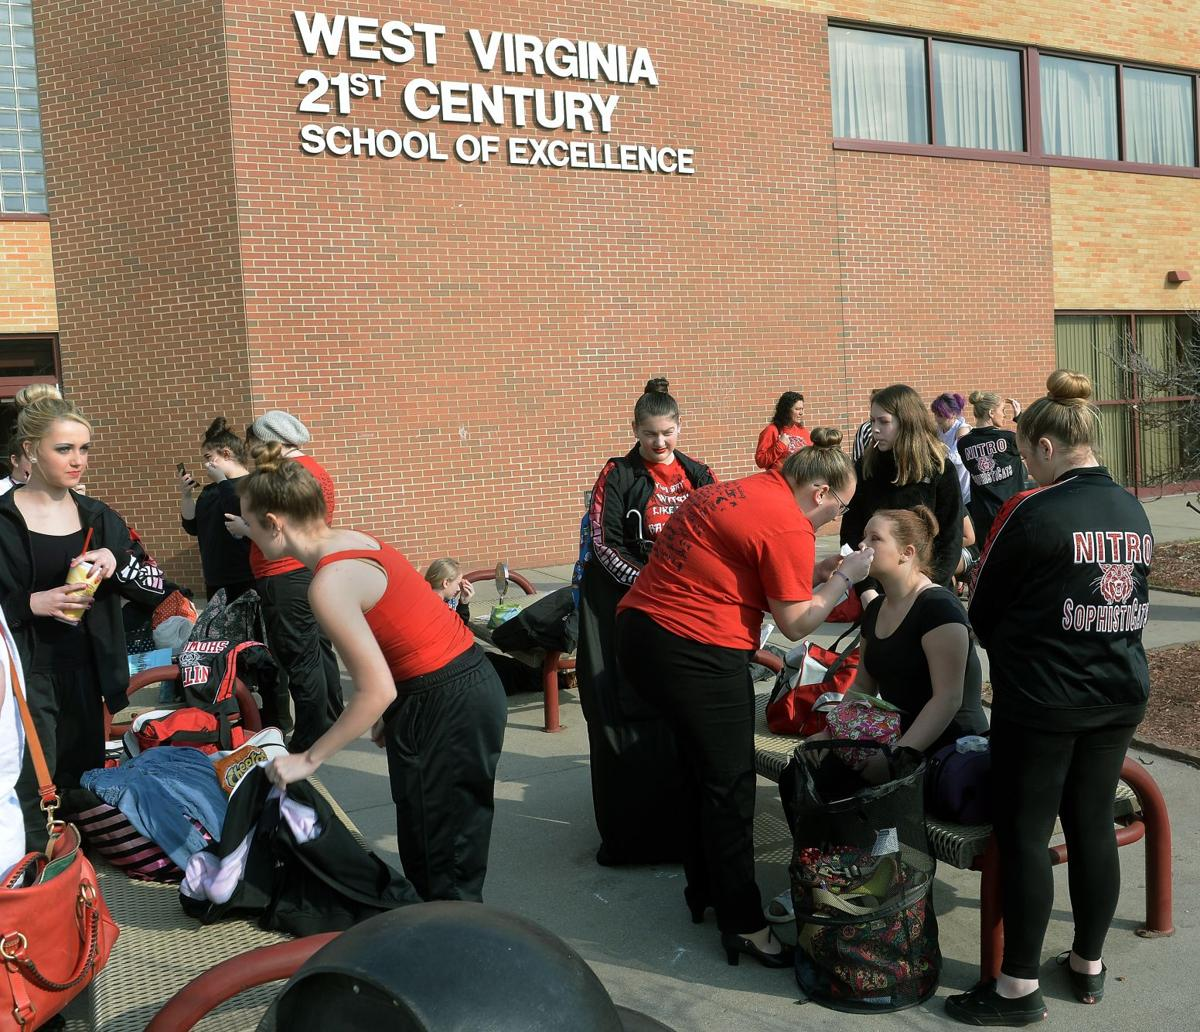 WV Show Choir Festival highlights vocals, costumes and friendships